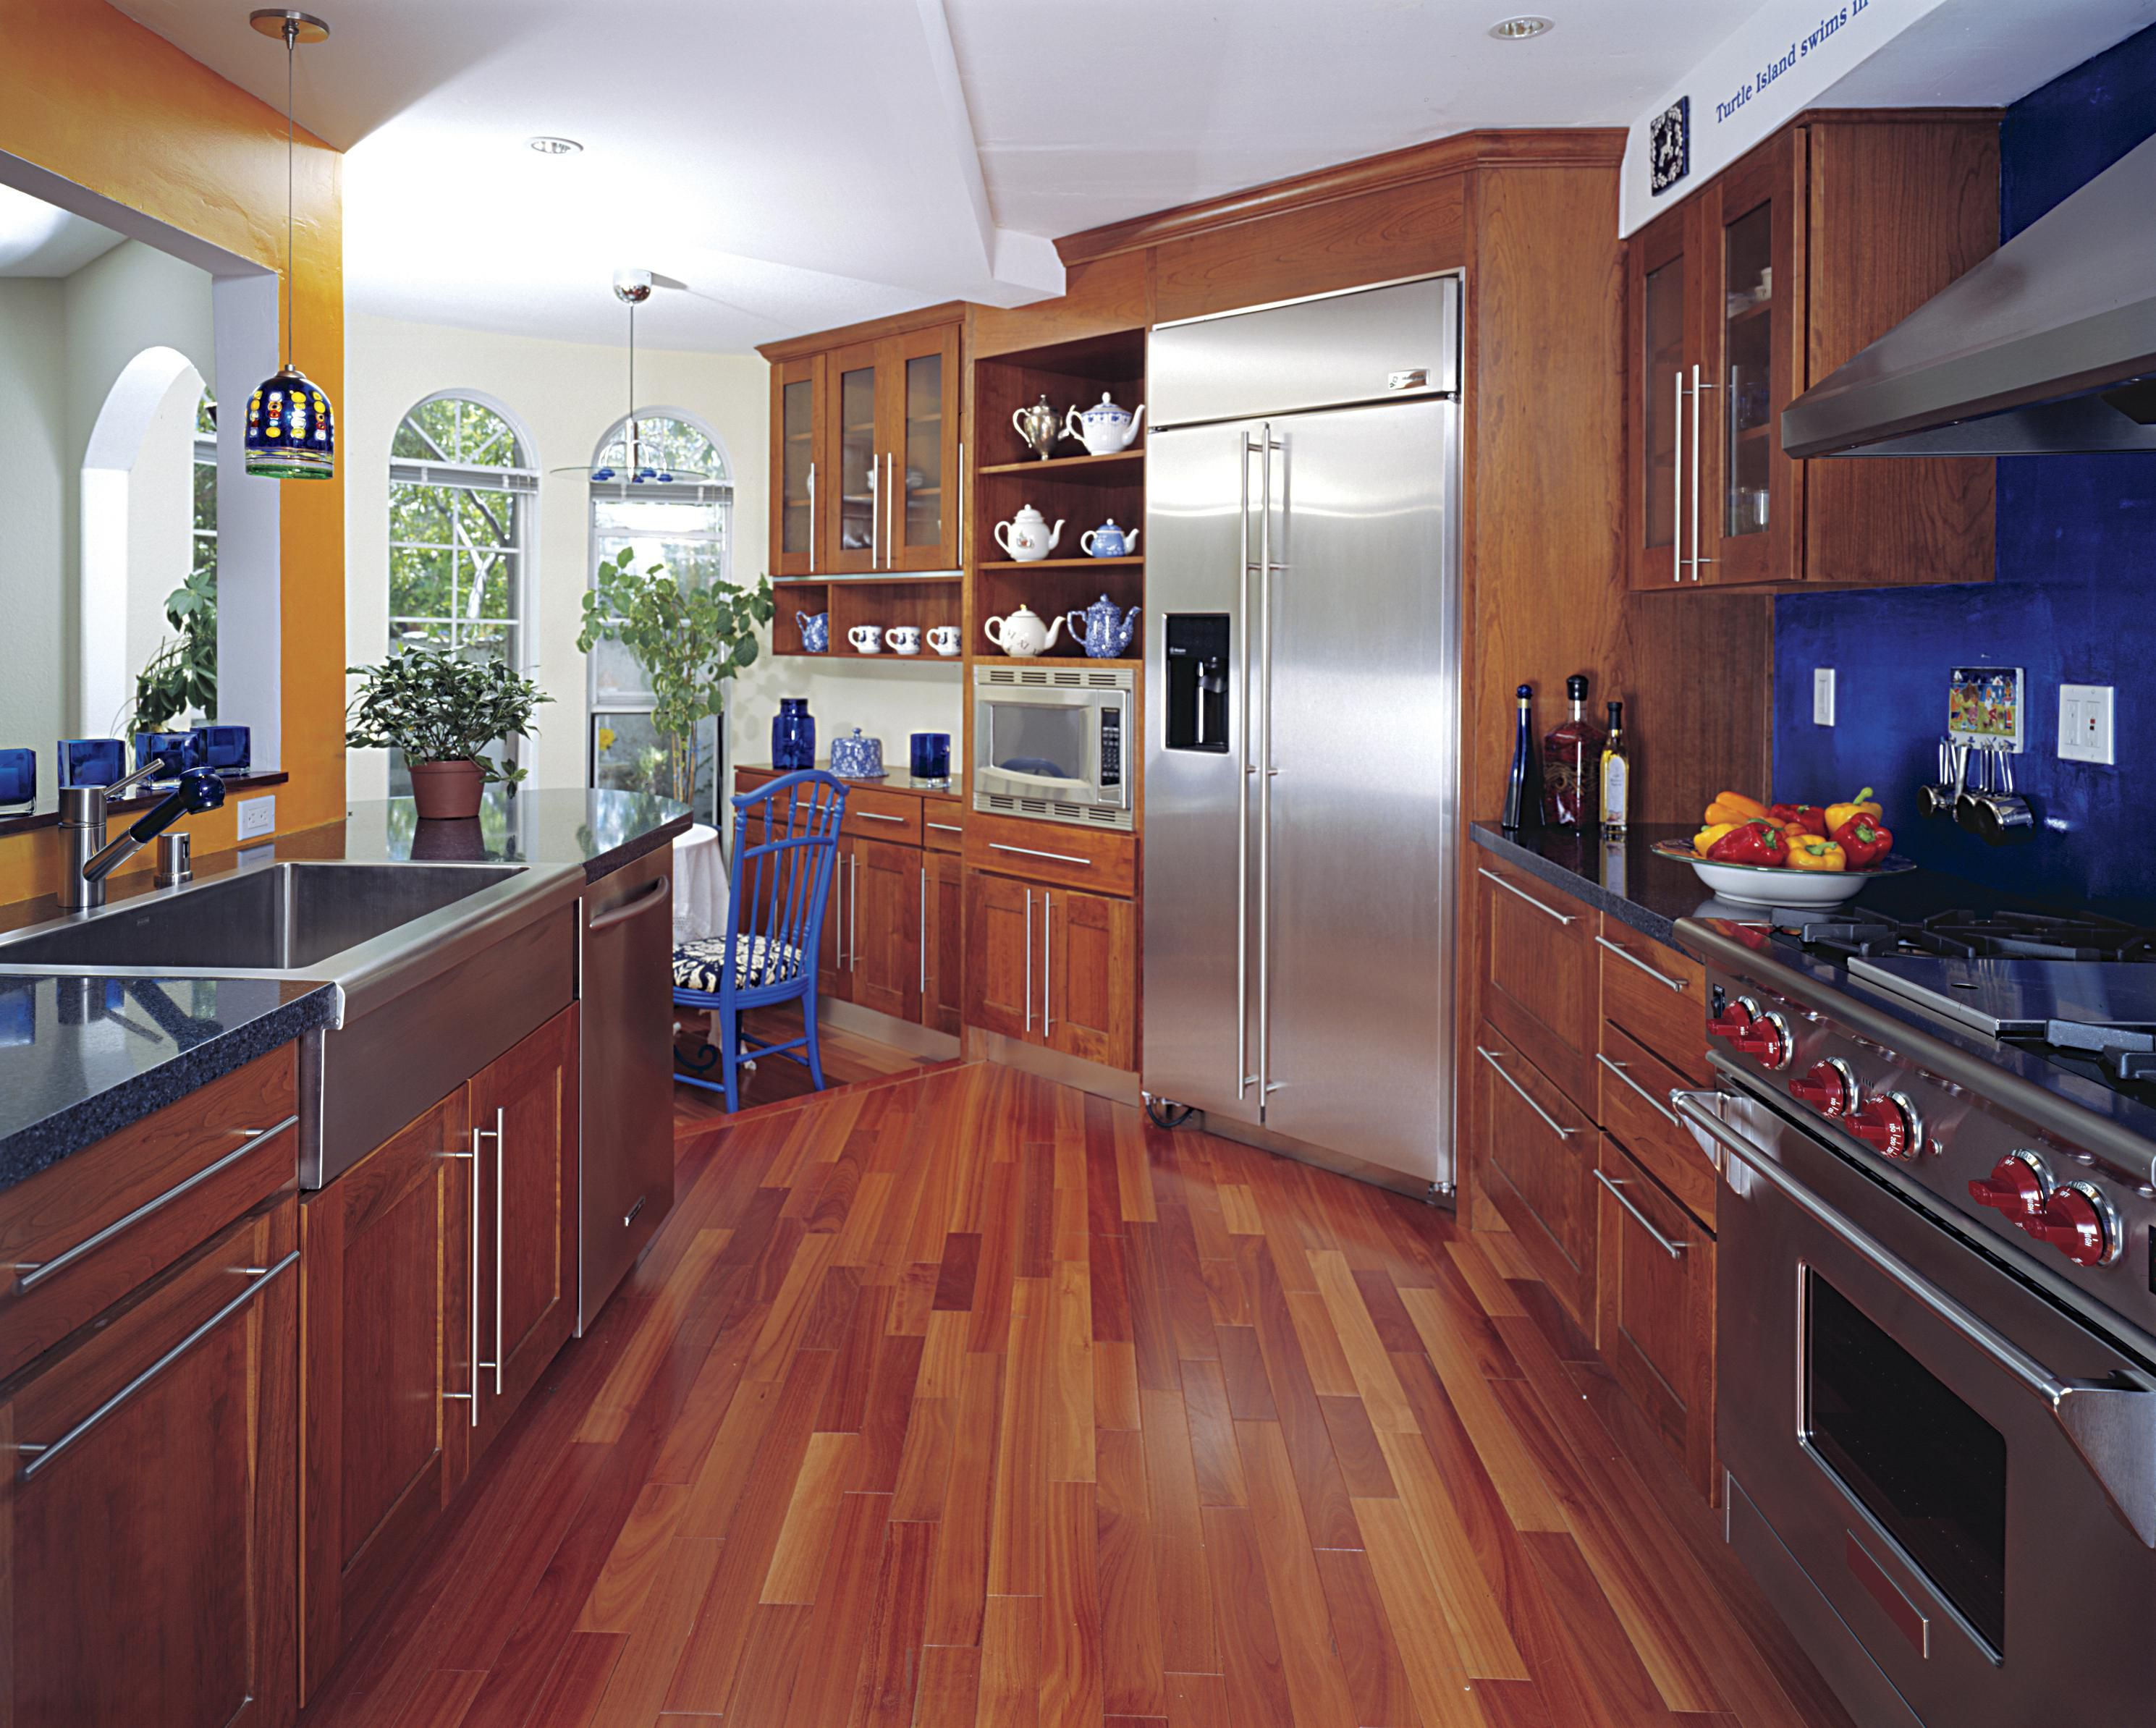 Hardwood floor in a kitchen is this allowed for Hardwood floors kitchen